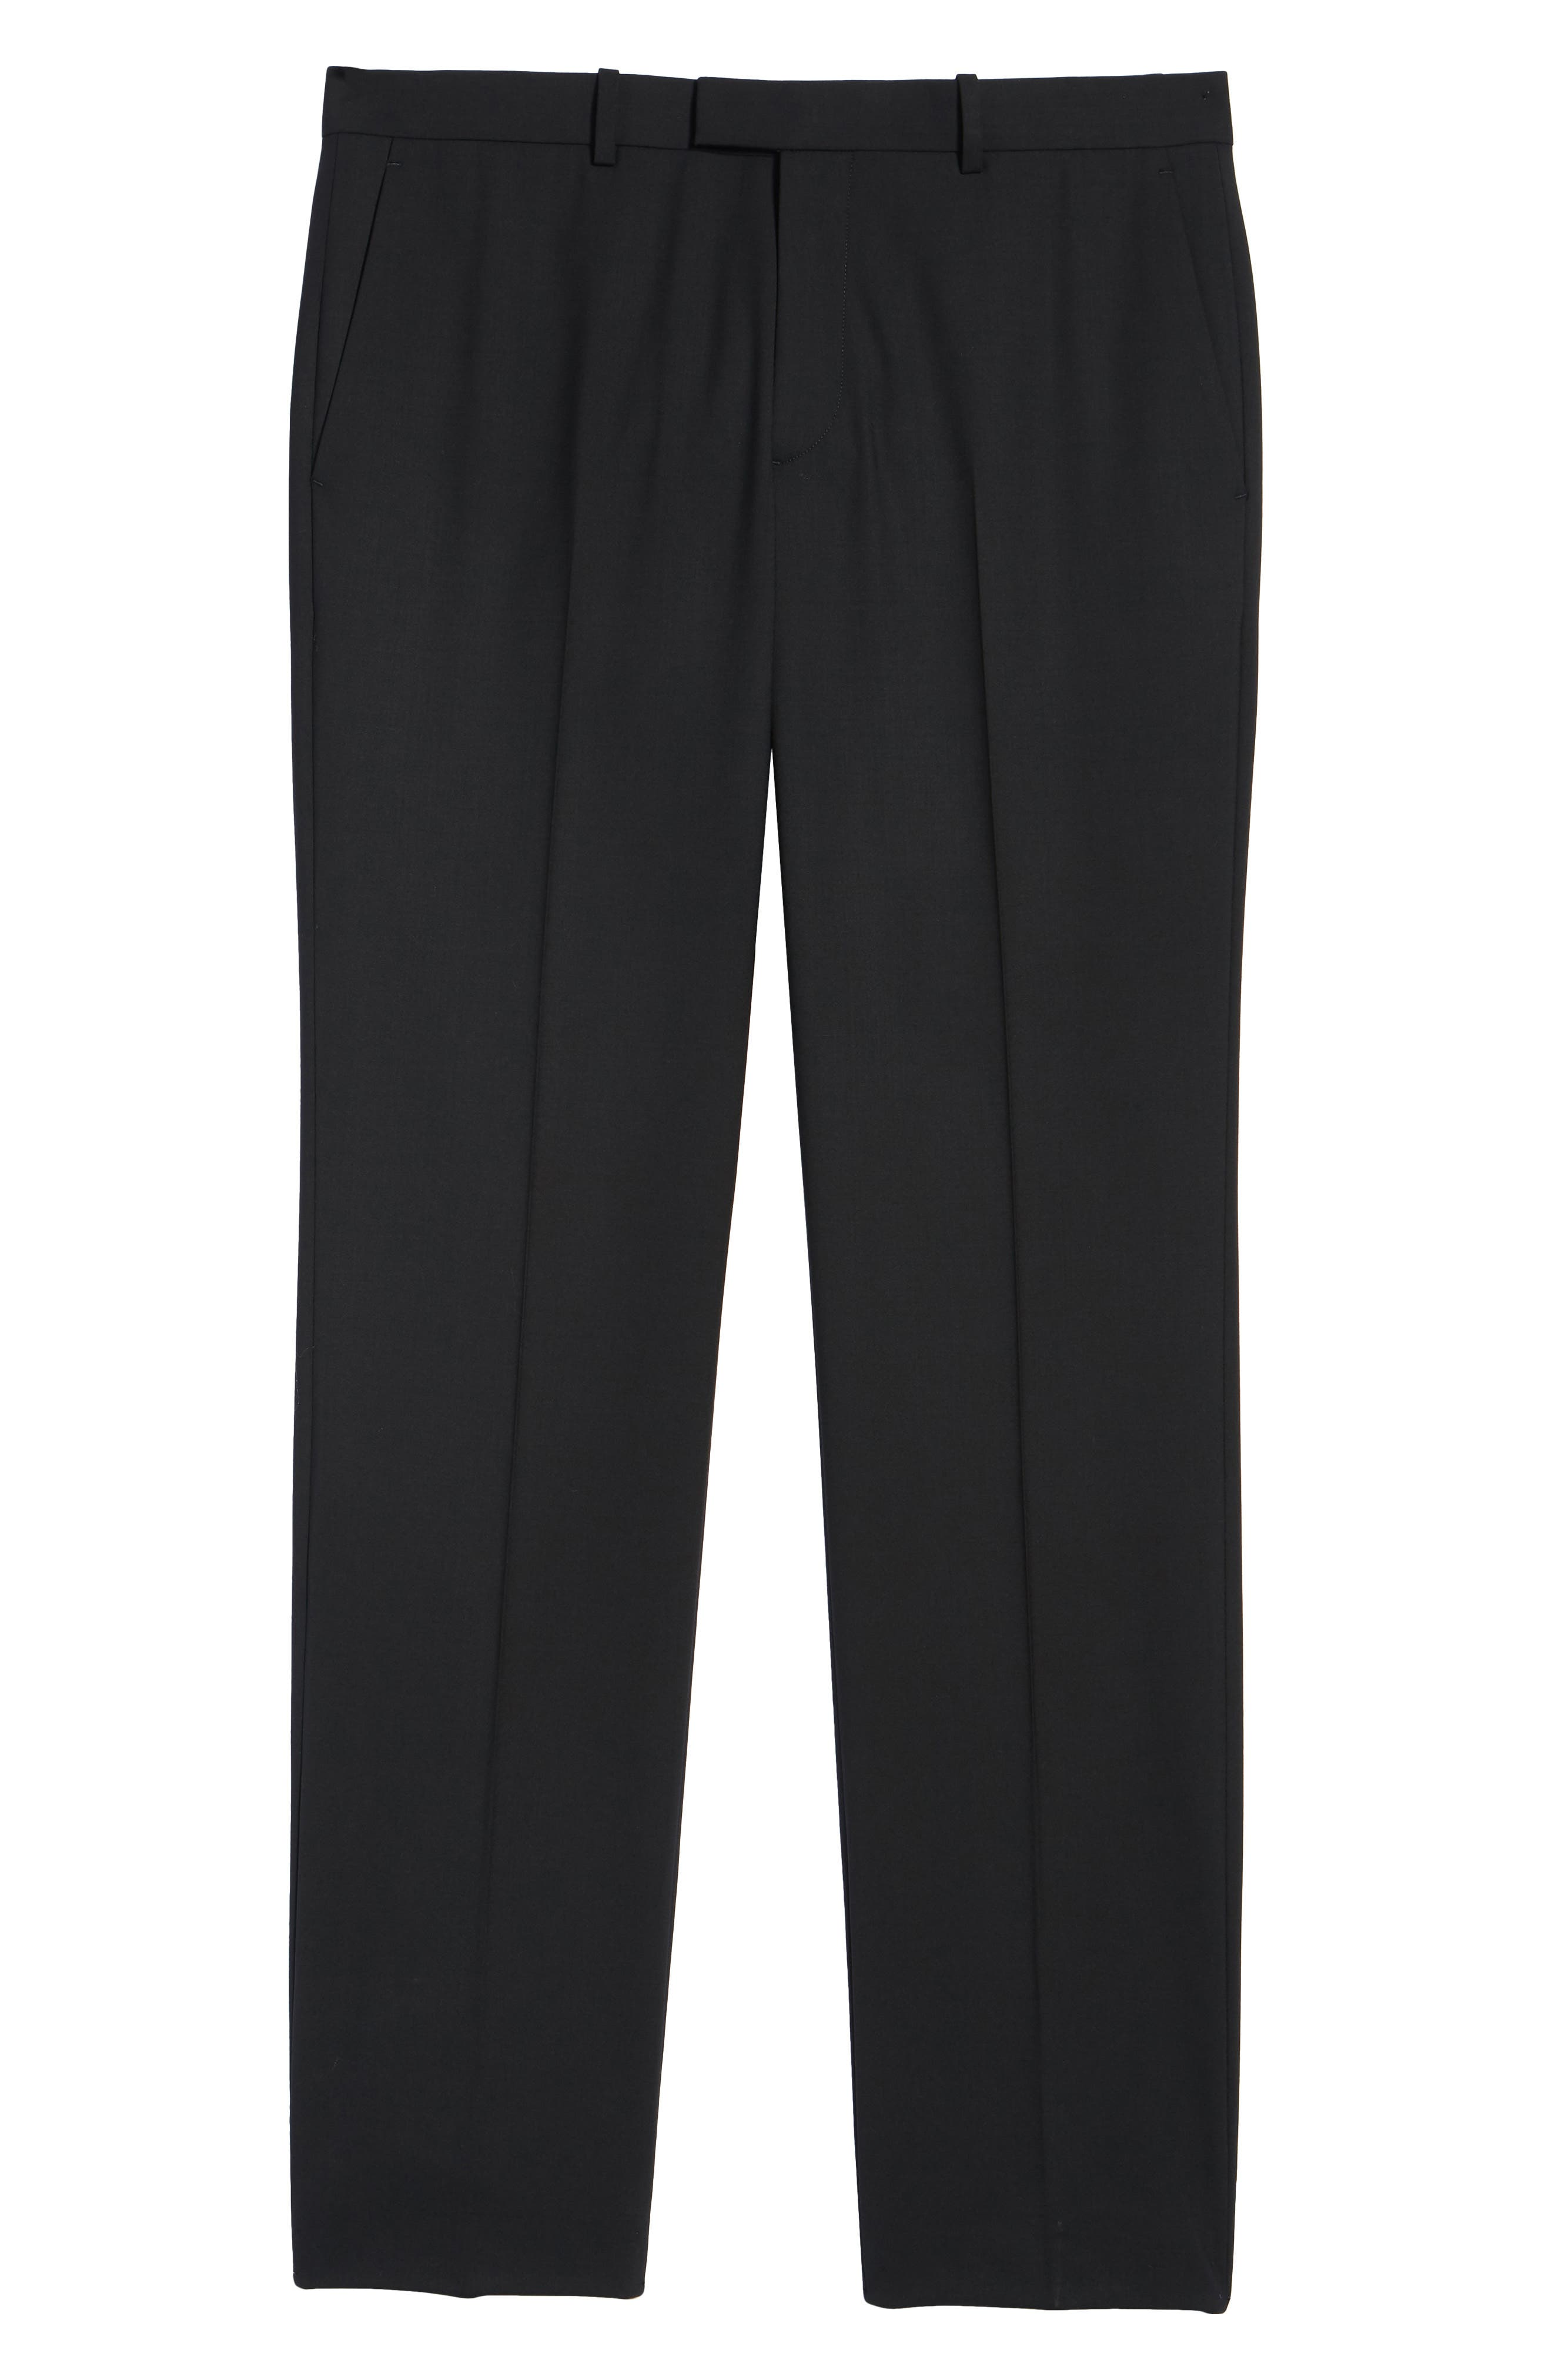 Marlo Flat Front Stretch Wool Pants,                             Alternate thumbnail 6, color,                             Black